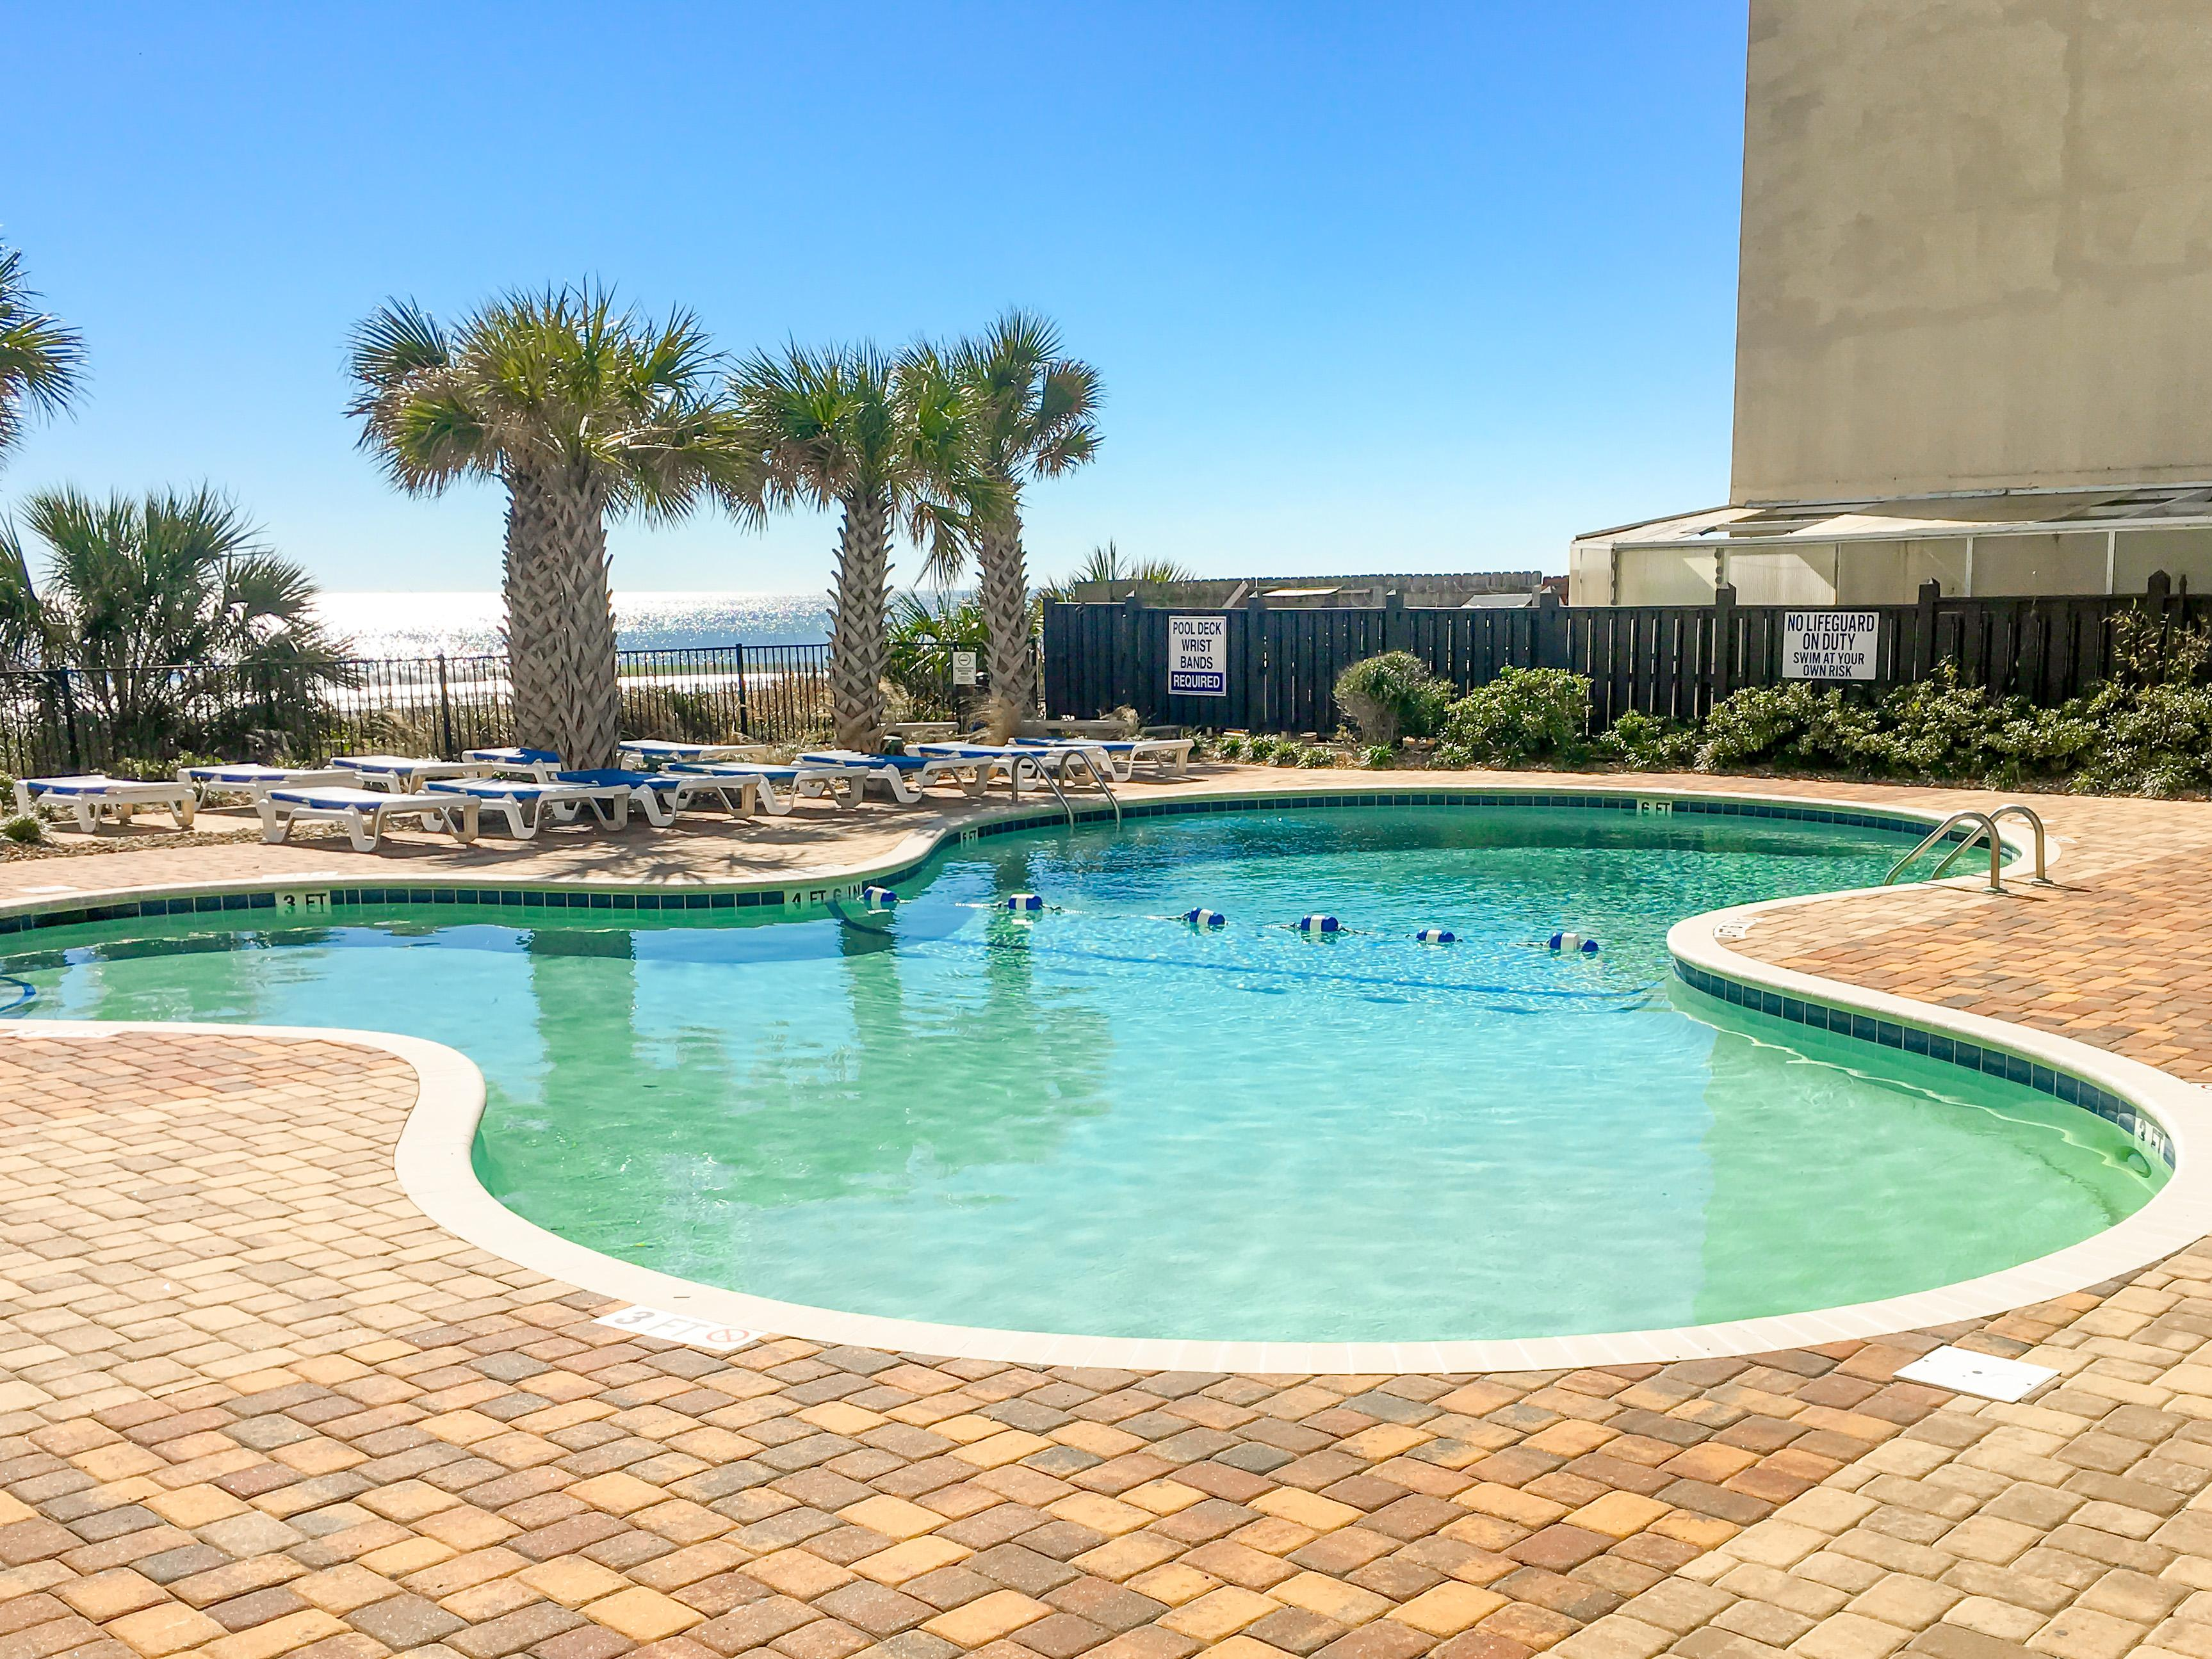 Your rental includes access to 2 outdoor pools (1 heated).